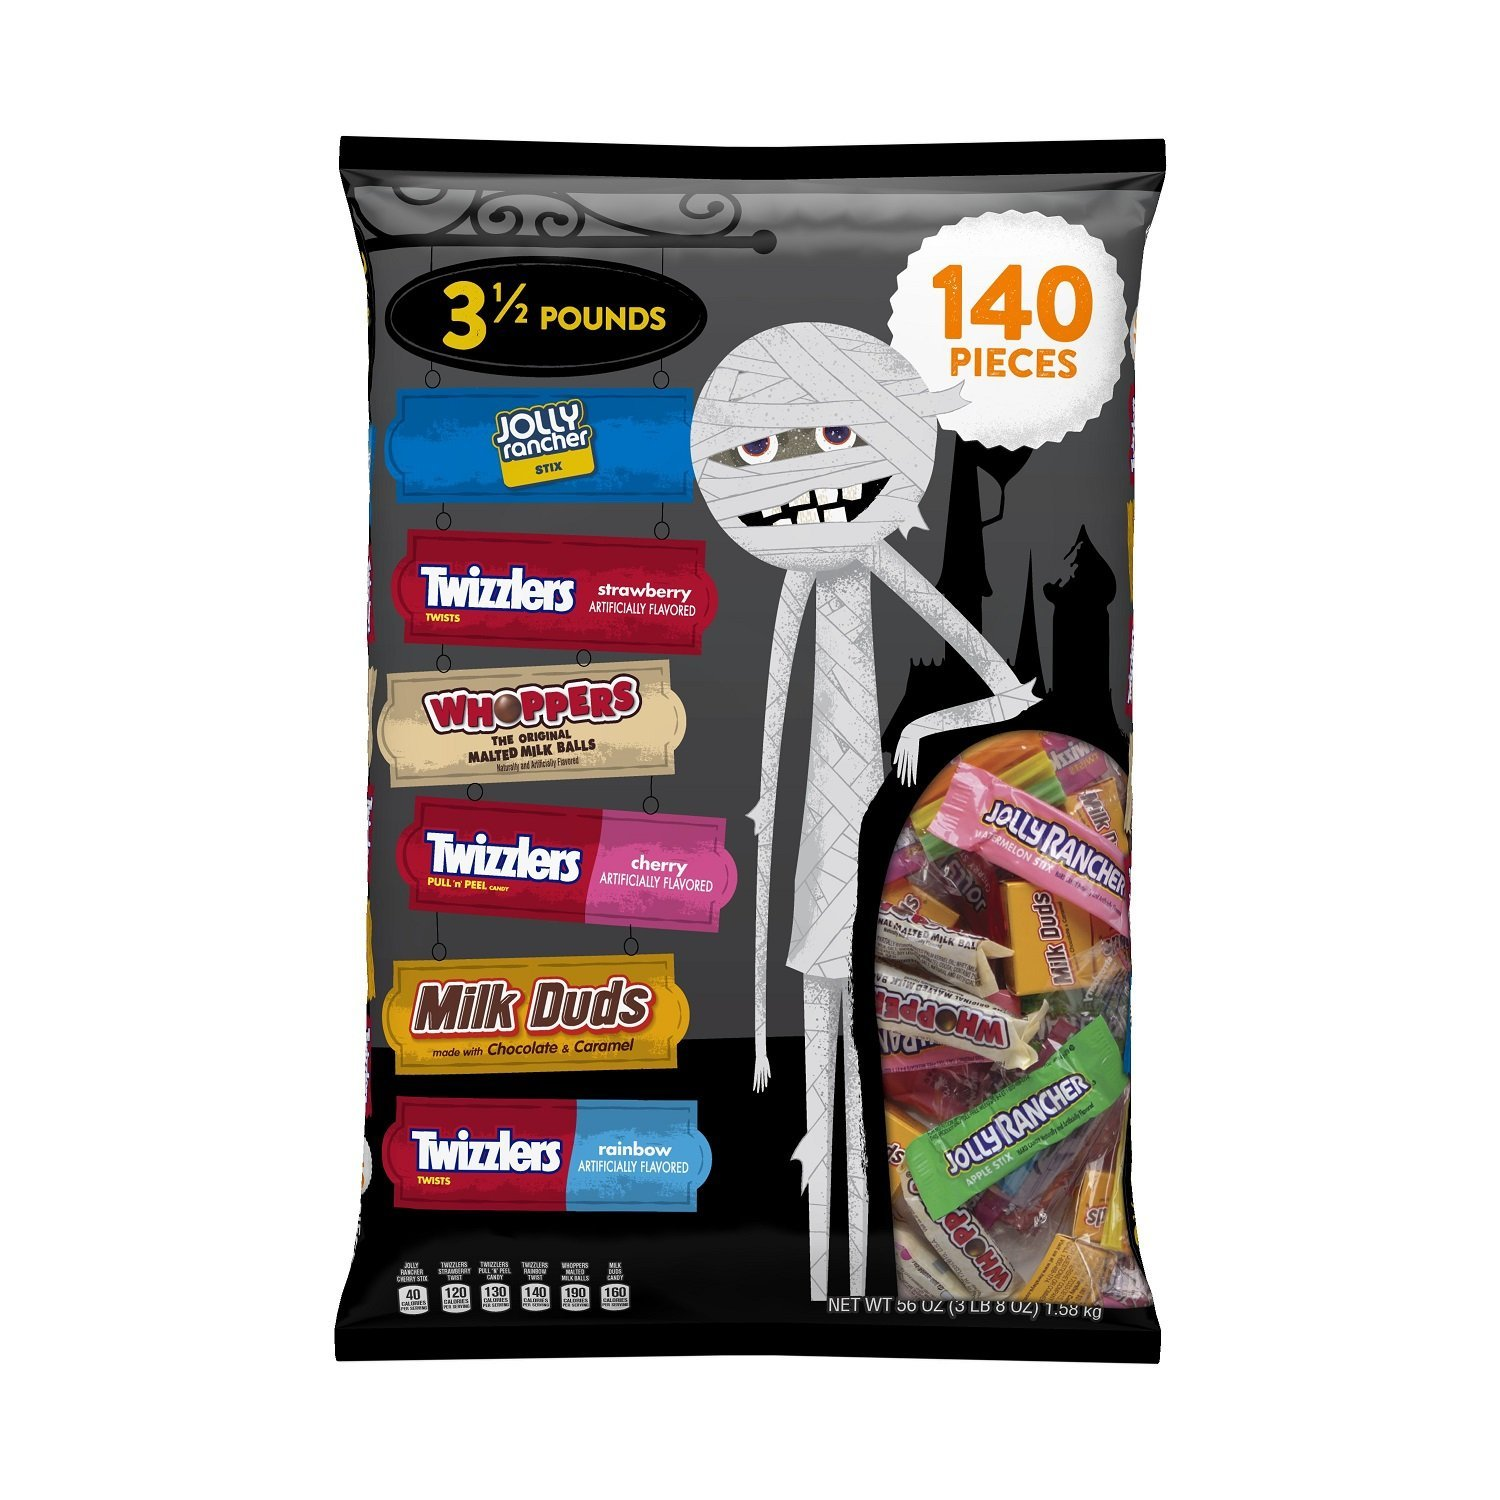 Hershey Halloween Snack Size, Candy Assortment (TWIZZLERS, JOLLY RANCHER, MILK DUDS, WHOPPERS Candy), 56 Ounce Bag (140 Pieces)